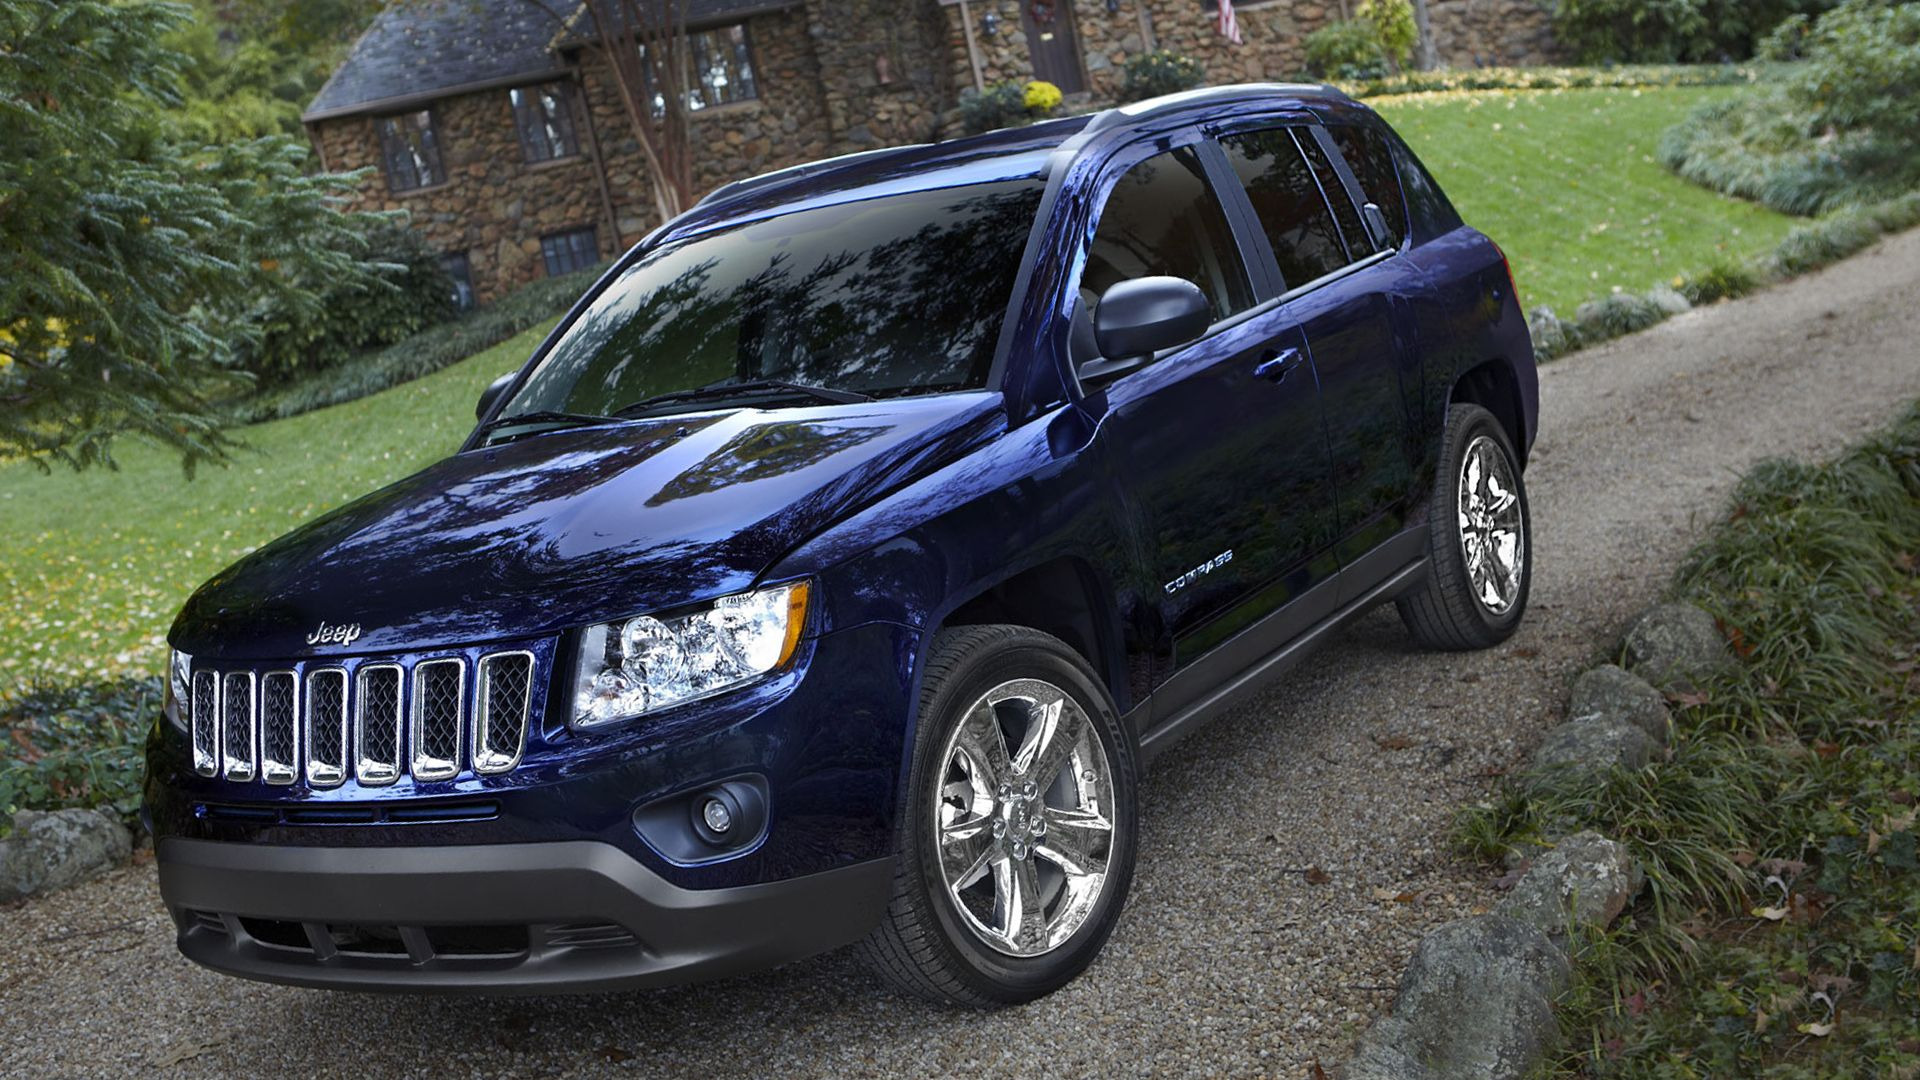 2019 Jeep Compass Review With Images Jeep Compass Reviews